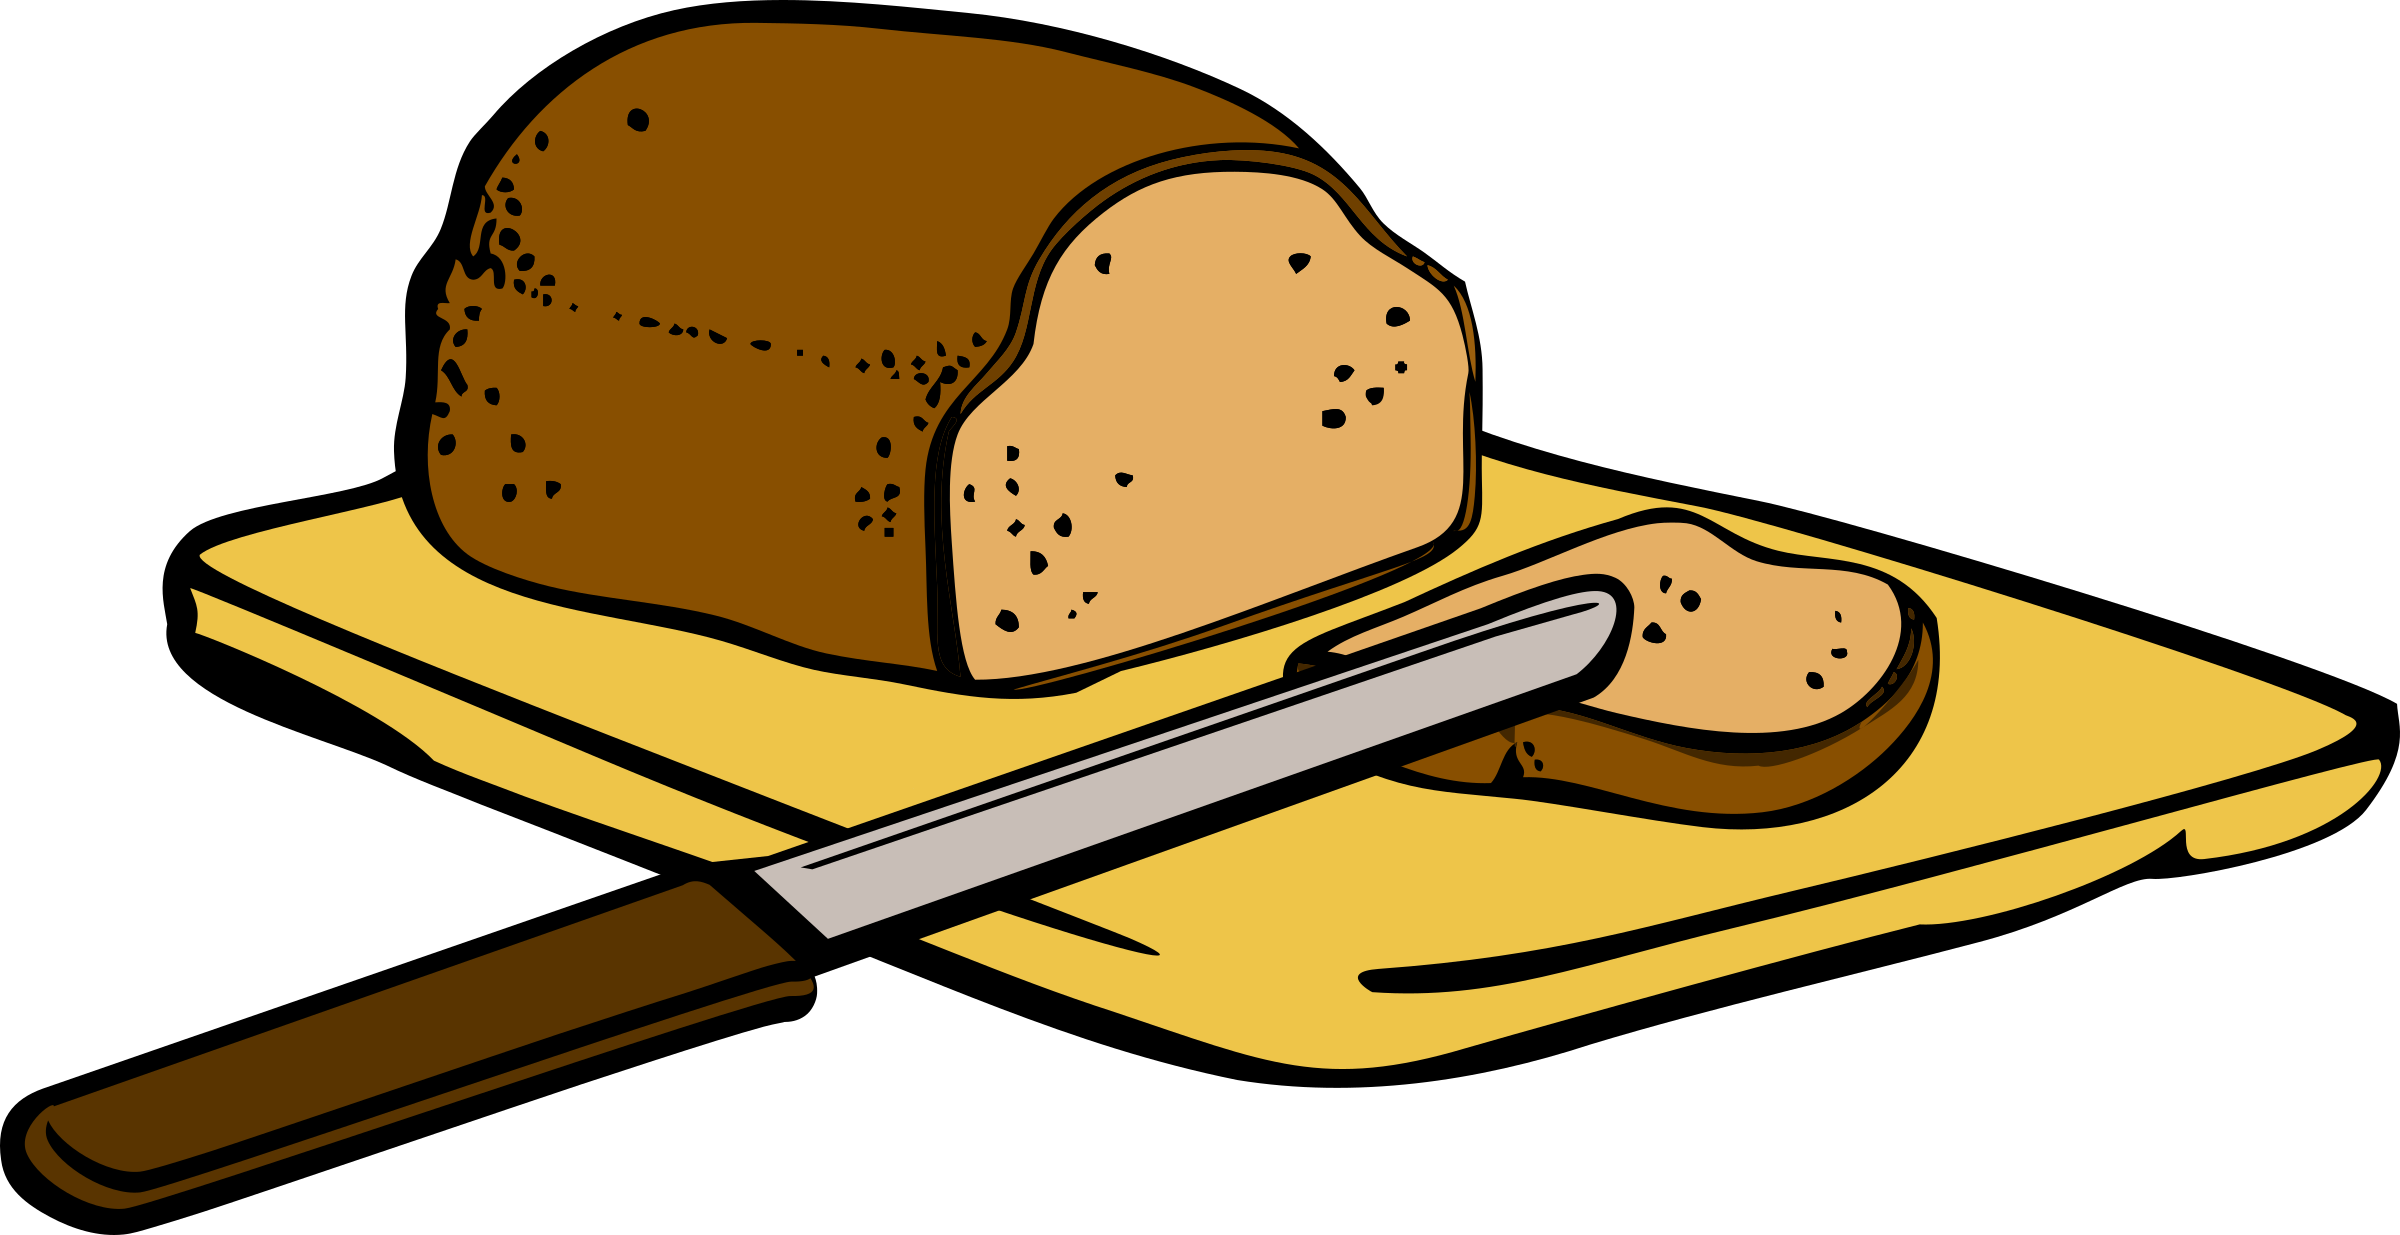 Knife clipart food Clipart Free Paring Knife Knife